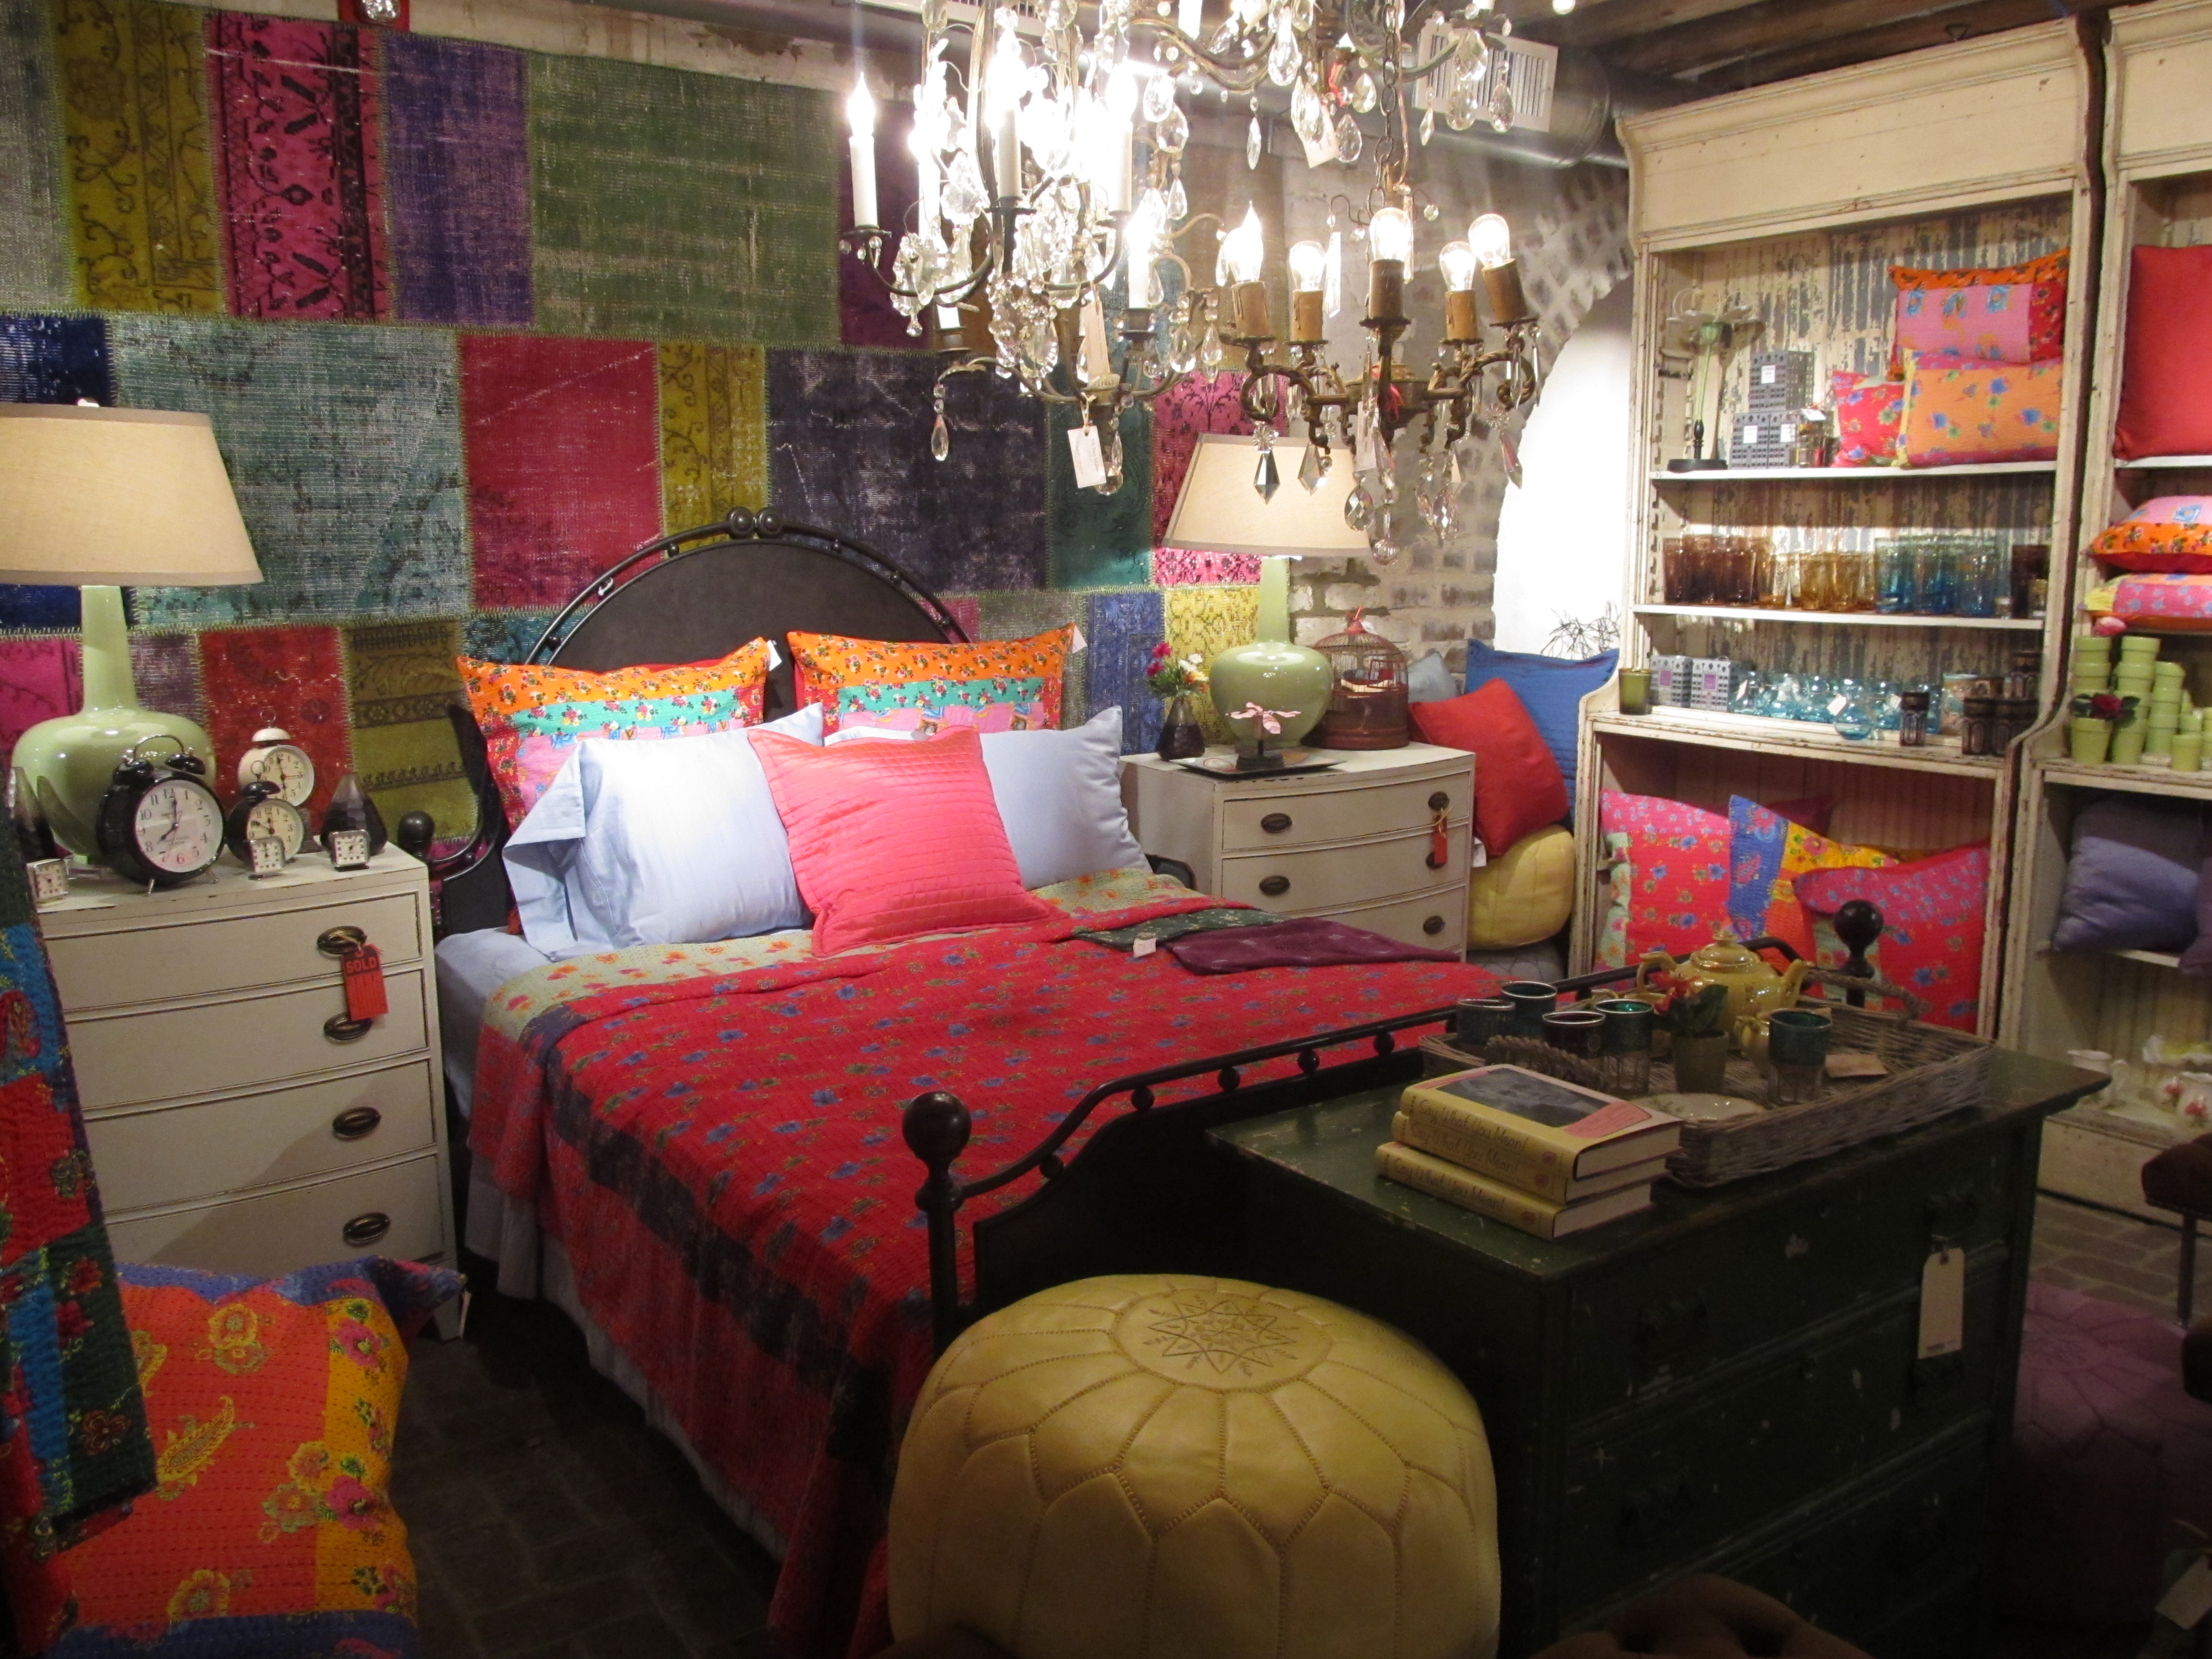 boho-bohemian-gypsy-bedroom-ideas-bohemian-bedroom-and-I'm-hoping-to-incorporate-some-of-the-wallpaper-wpc9003121